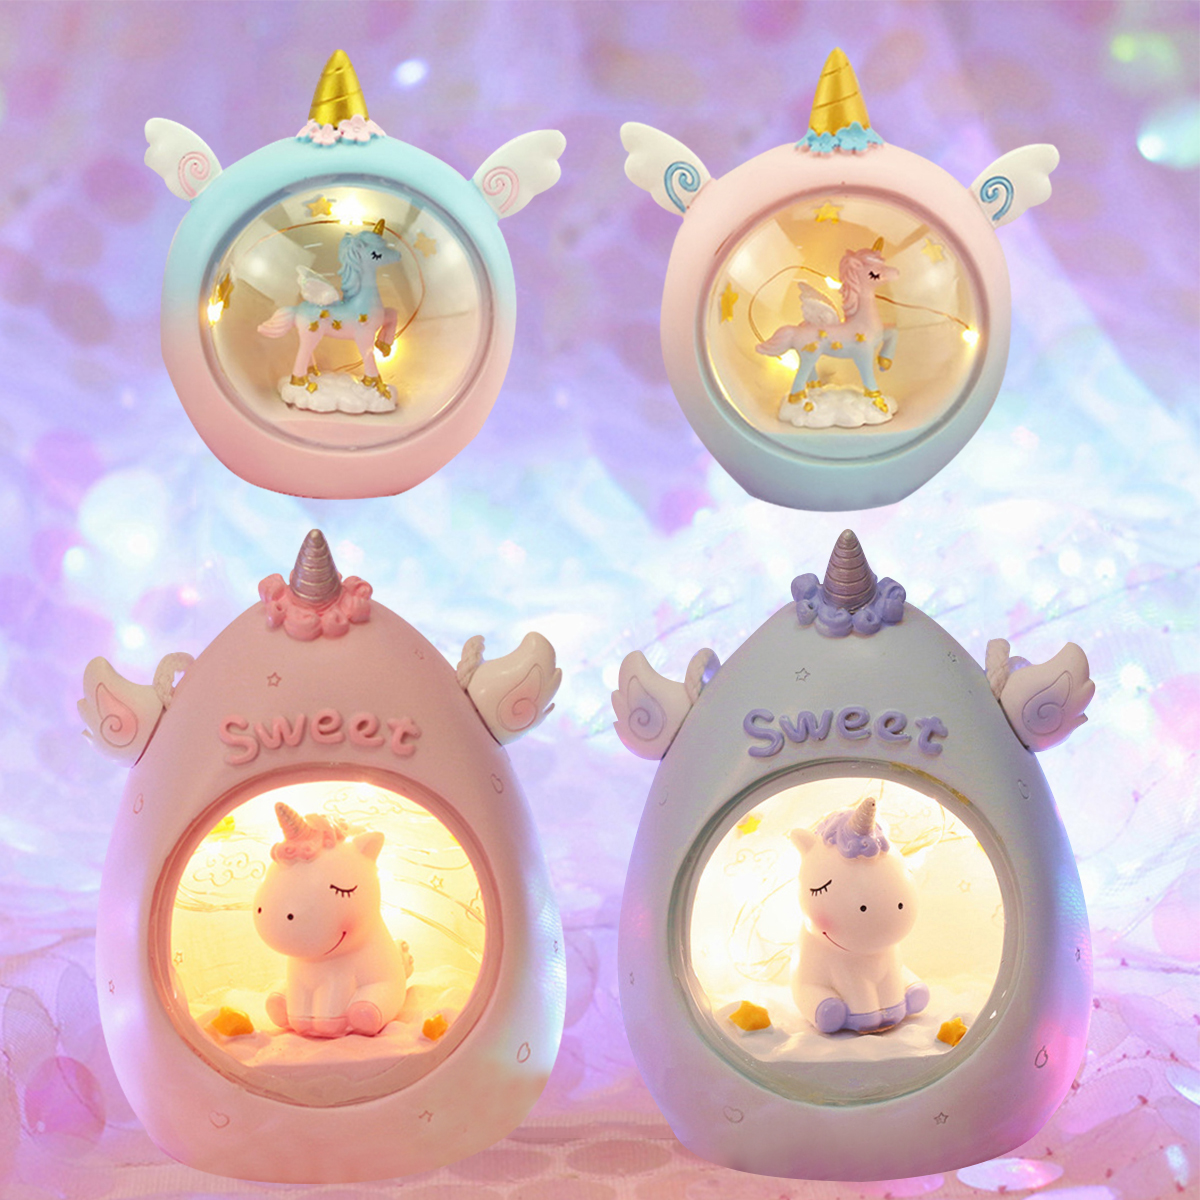 LED Cartoon Unicorn Night Light Baby Nursery Lamps Table Decorative Light Children Kids Toys Birthday Xmas Gift Drop Shipping